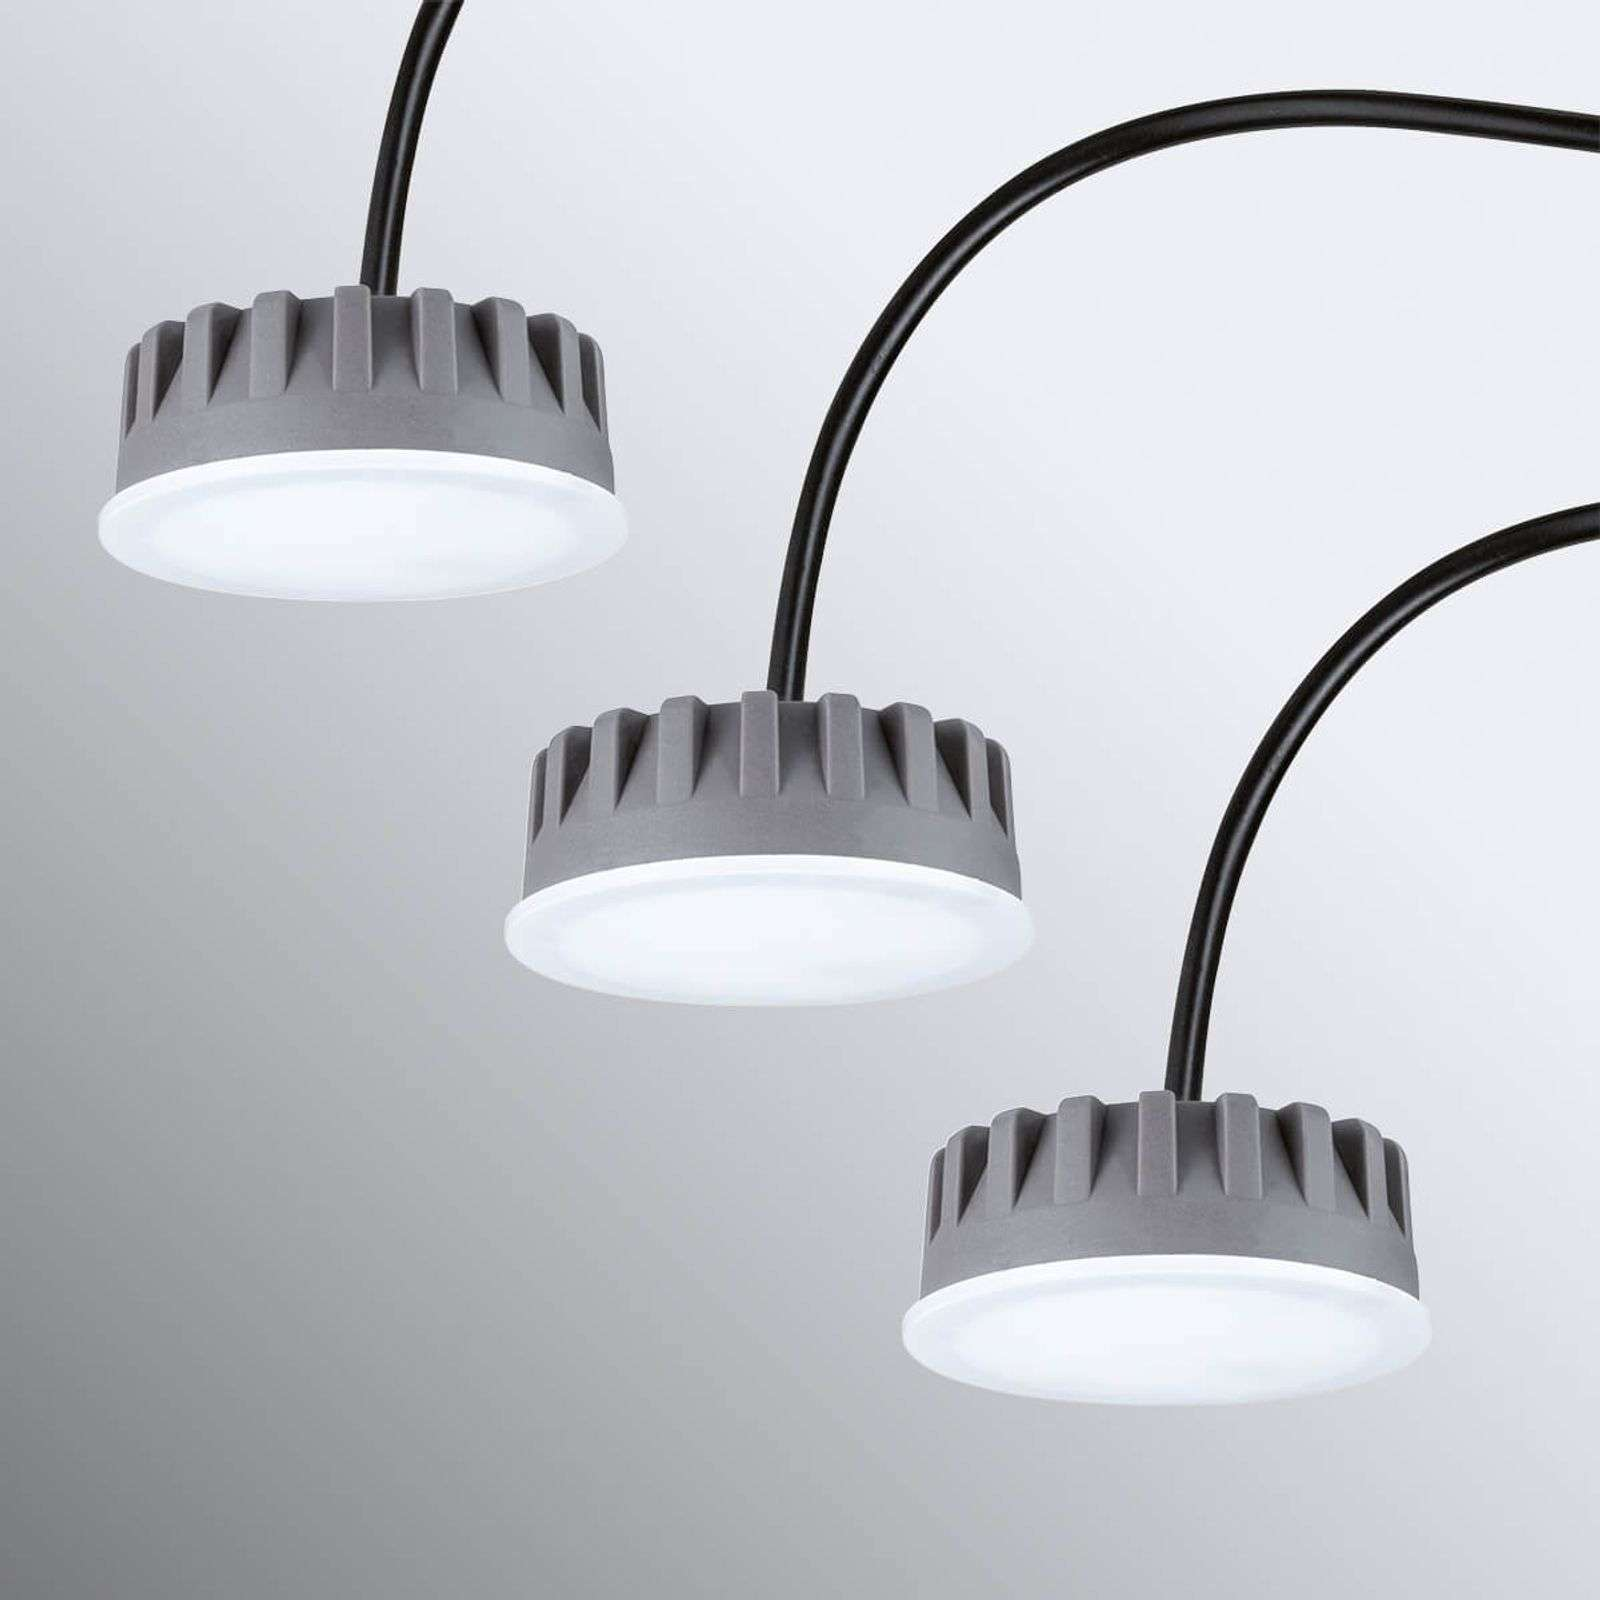 LED module Coin Slim for recessed light, set of 3